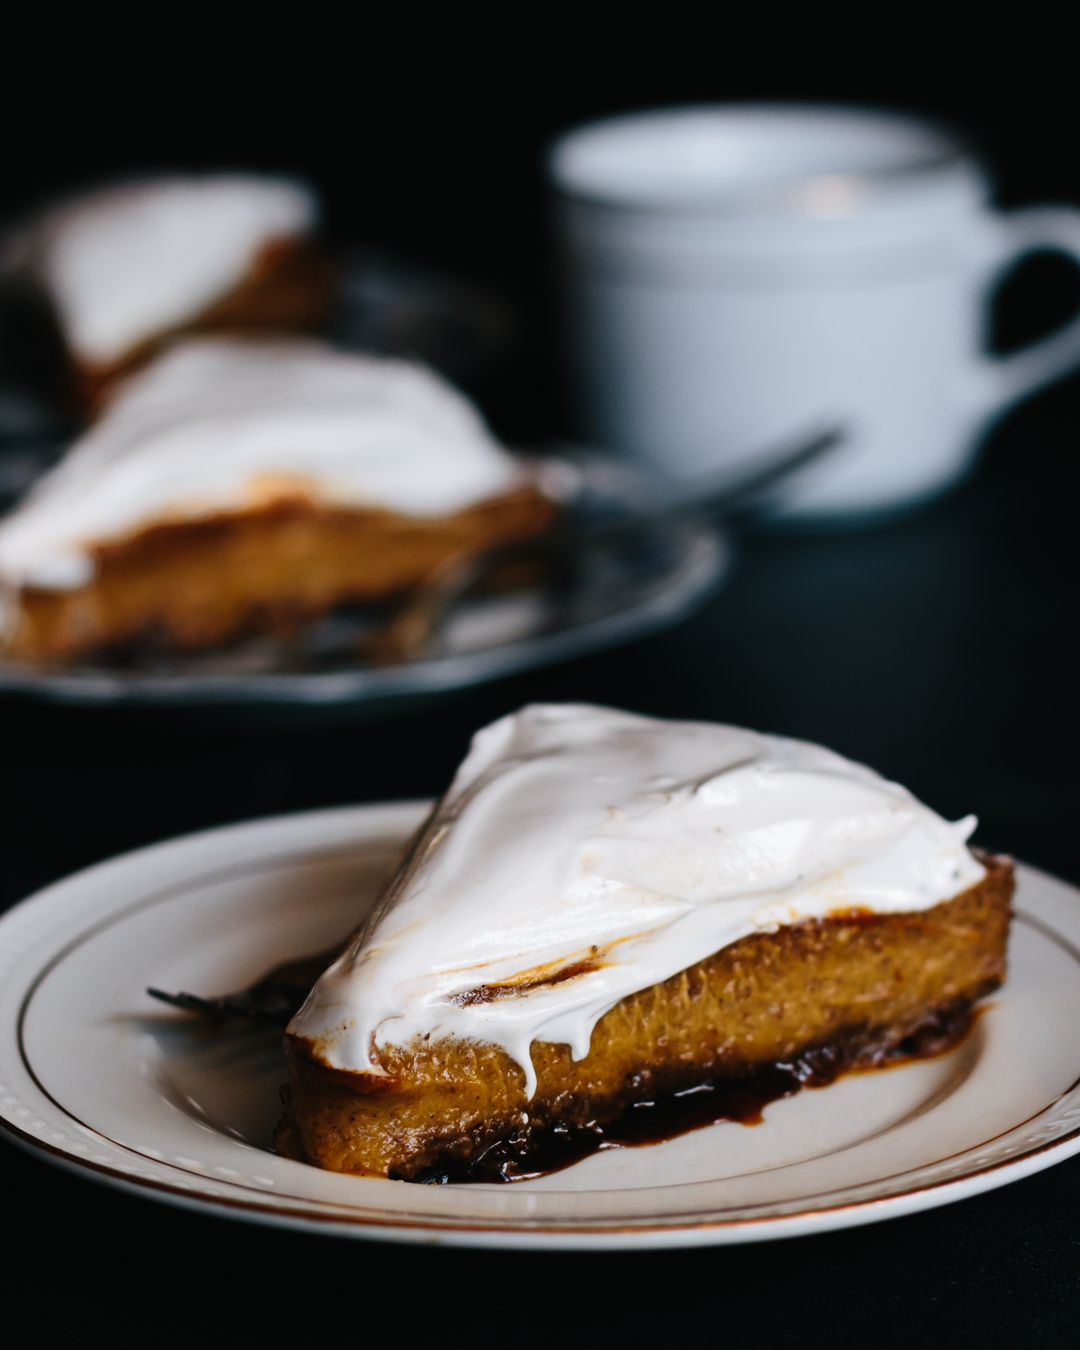 Straight on shot of a slice of pumpkin pie in front of a coffee cup and more pie.